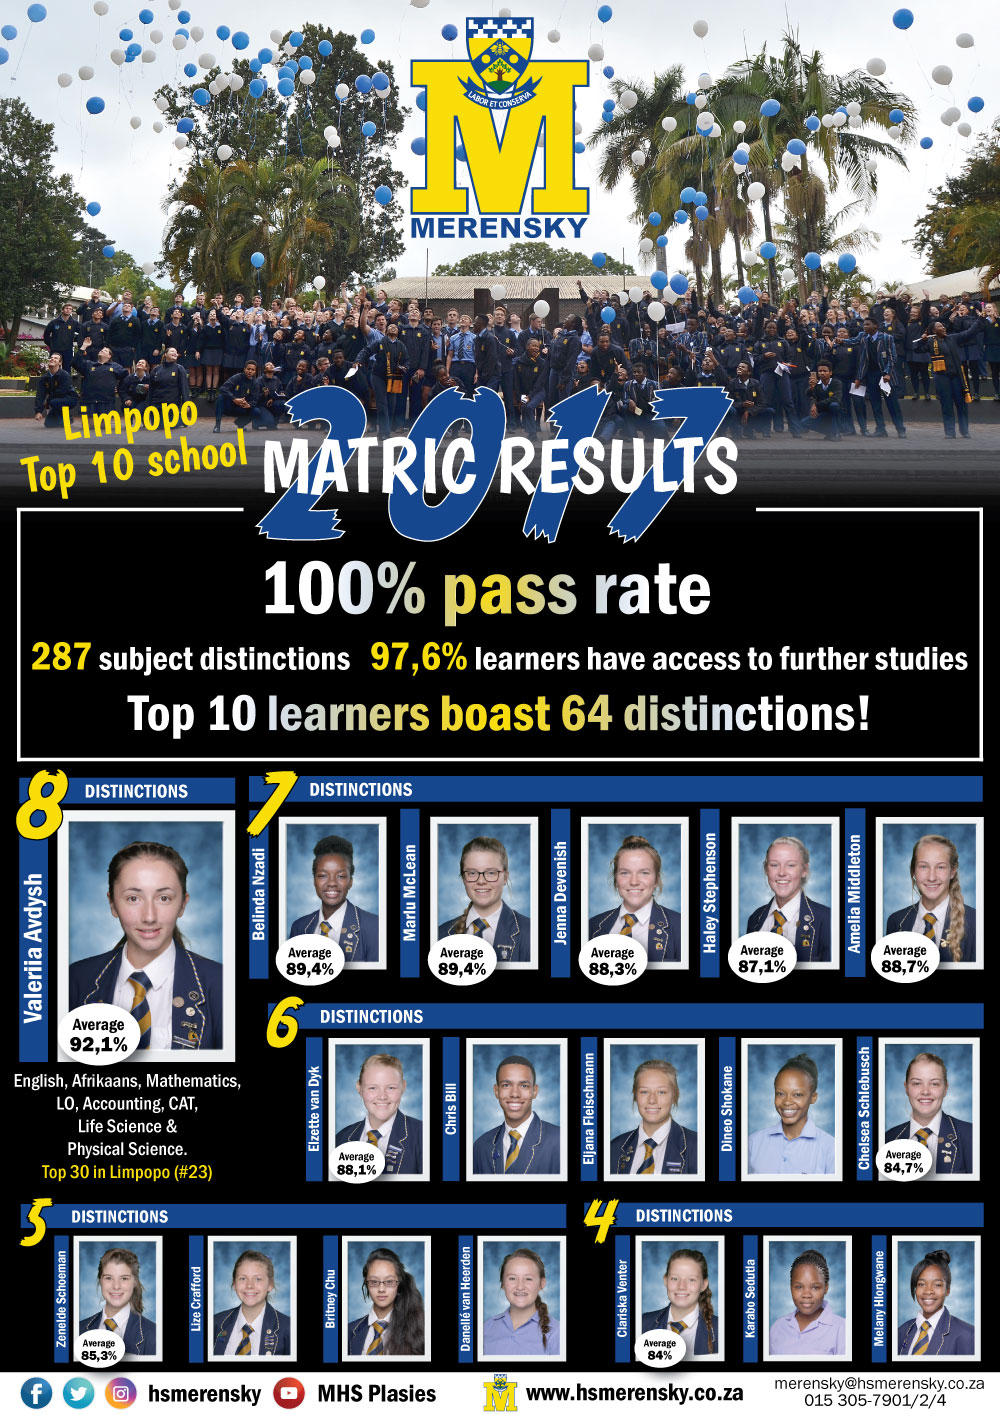 2017 Matric results